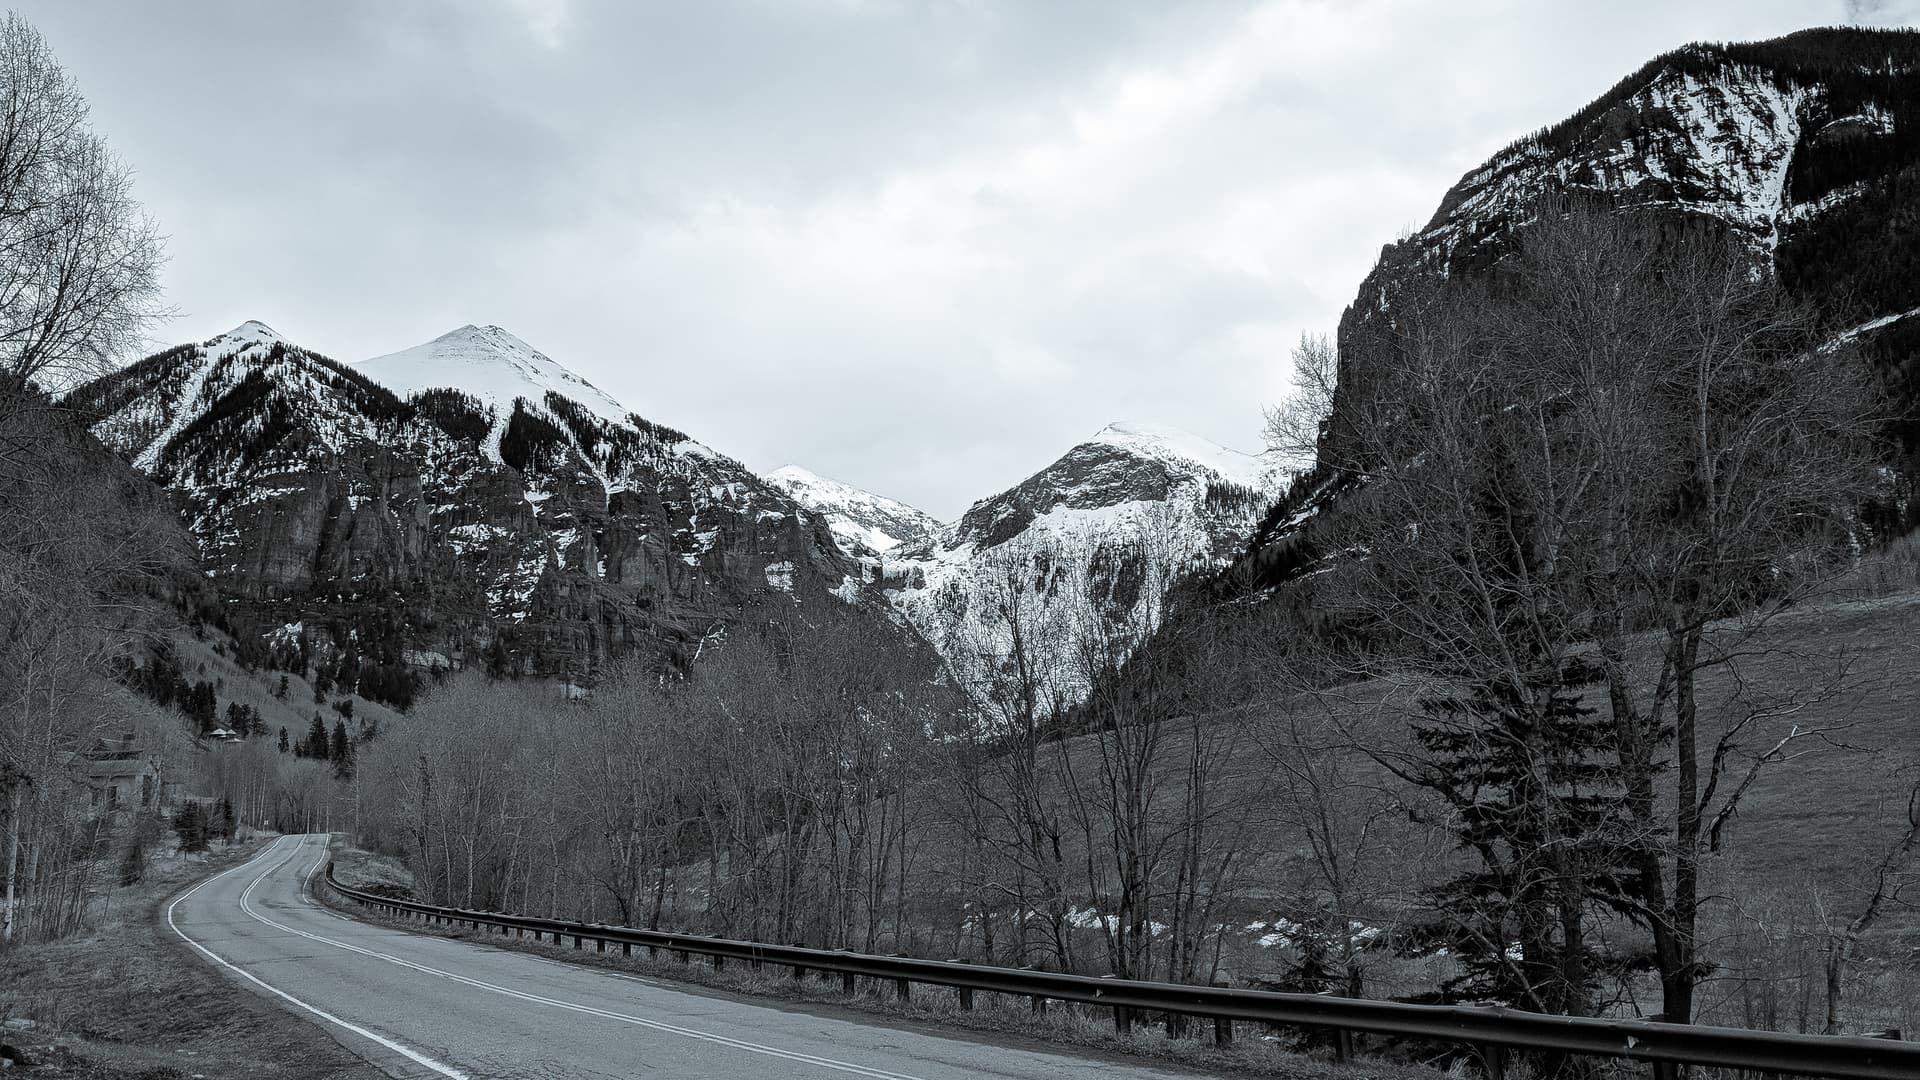 A black-and-white photo of a mountain road winding along a valley next to a tree-lined creek. Beyond the trees, three distinctly triangular snow-capped peaks can be seen.